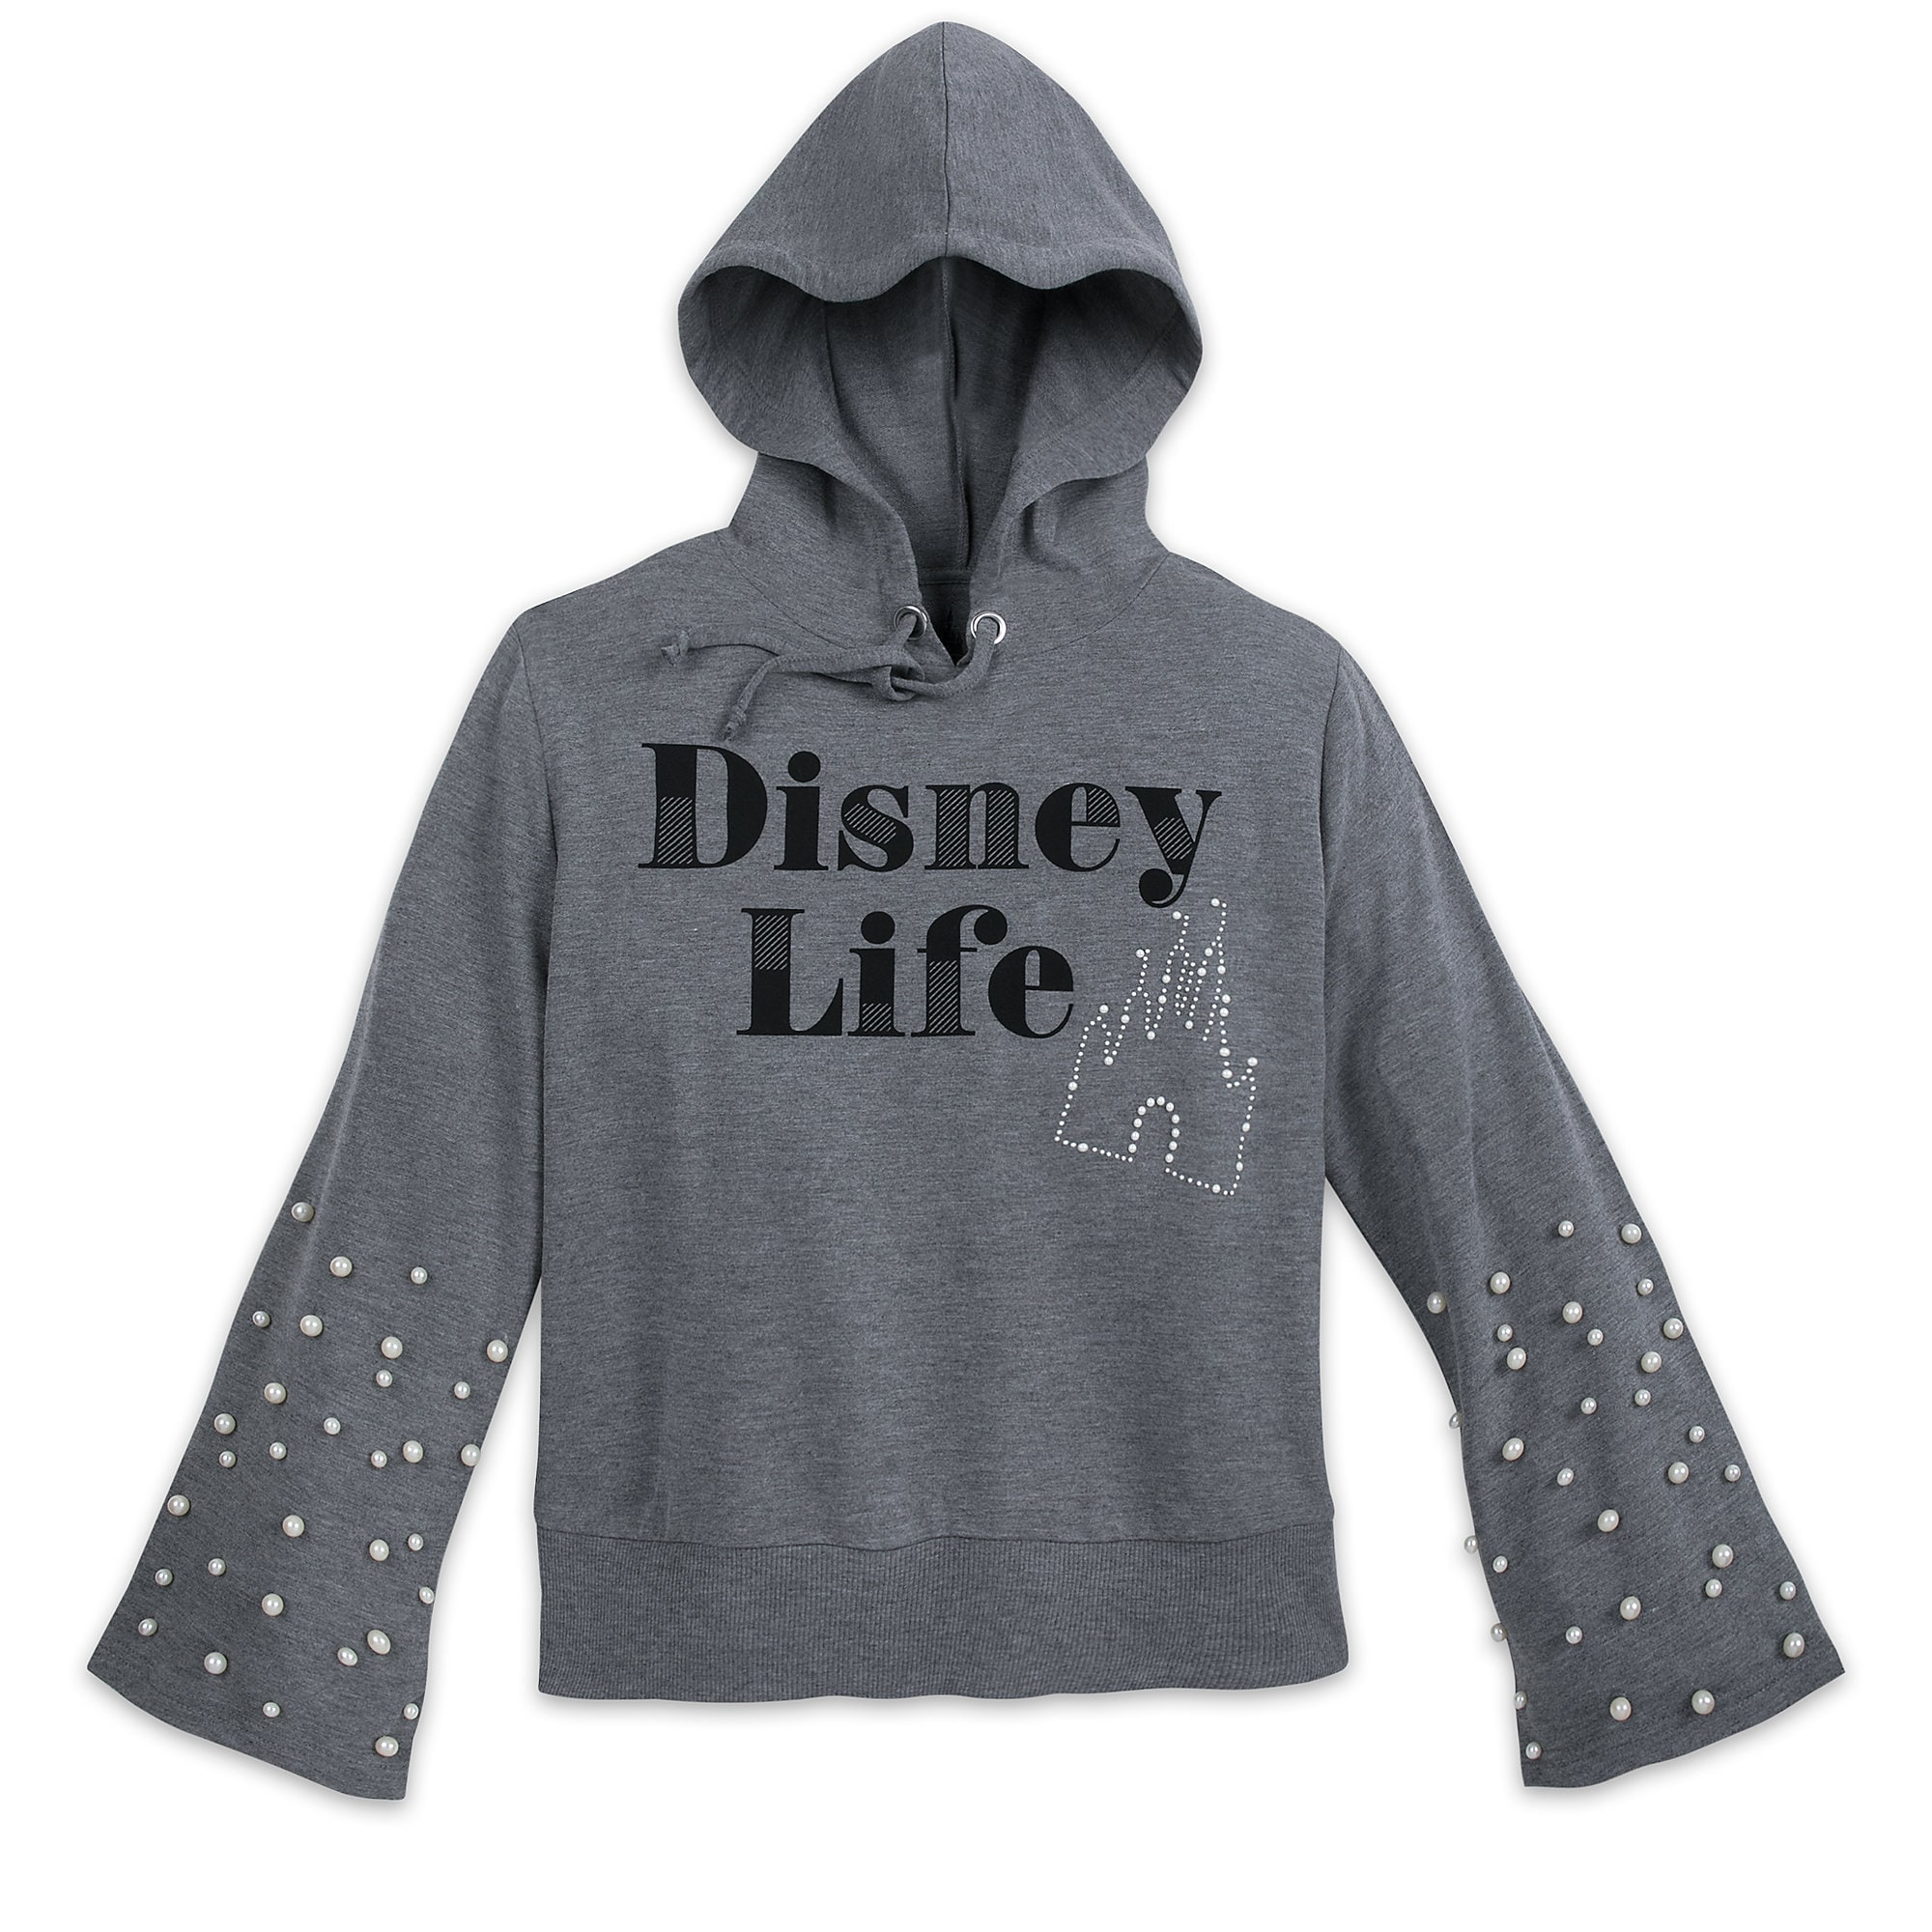 6b9ee88d6f43 Product image of fantasyland castle disney life long sleeve hooded jpg  1200x1200 Long sleeve shirt hoodie